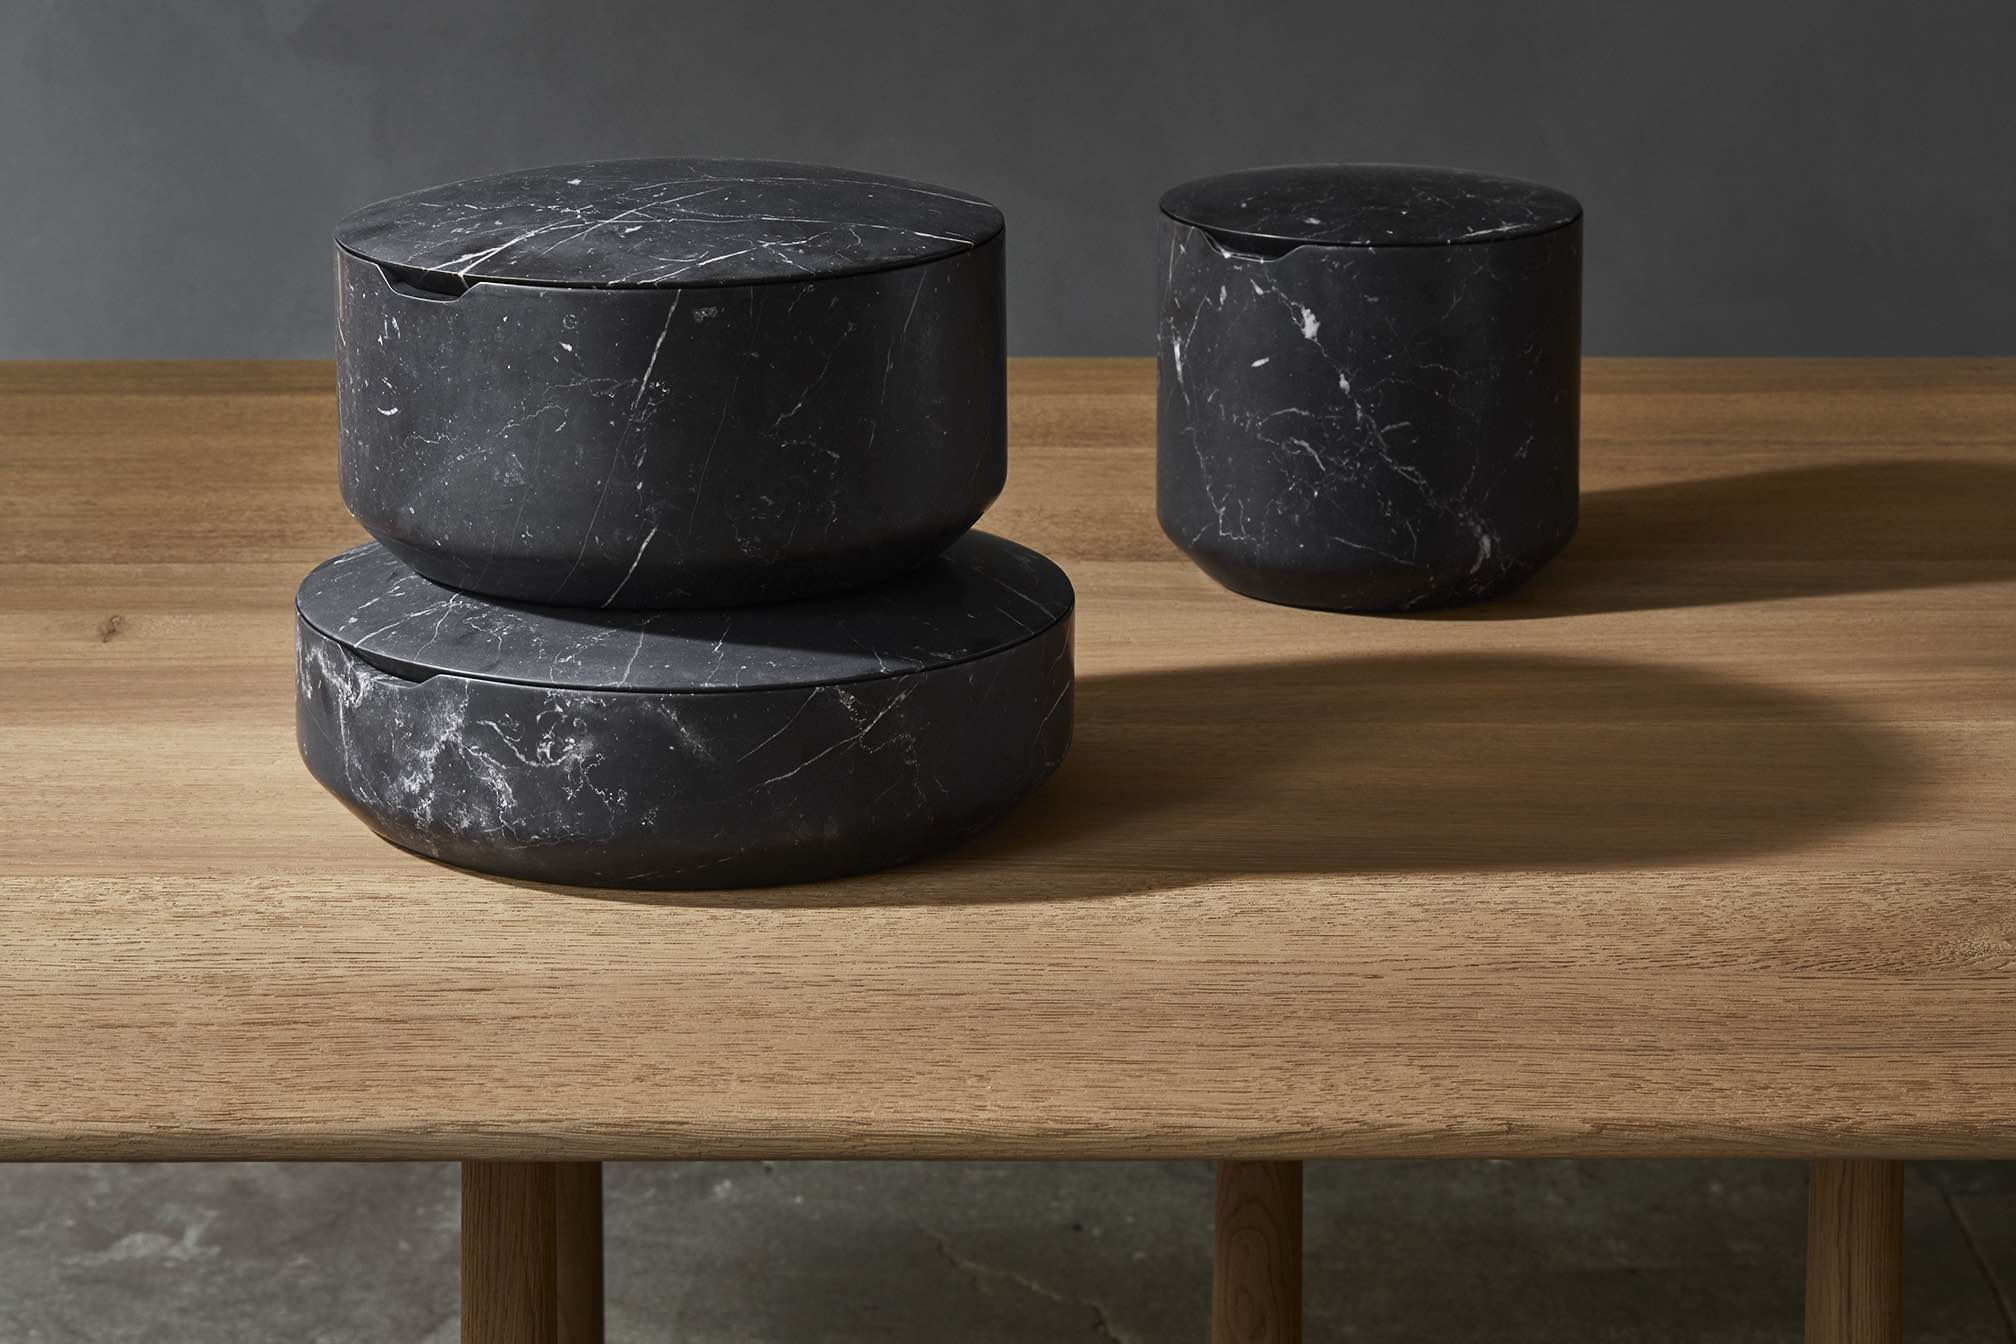 CAIRN-CONTAINERS-NERO-MARQUINA-DESIGN-CHRISTOPHE-DELCOURT-COLLECTION-PARTICULIERE